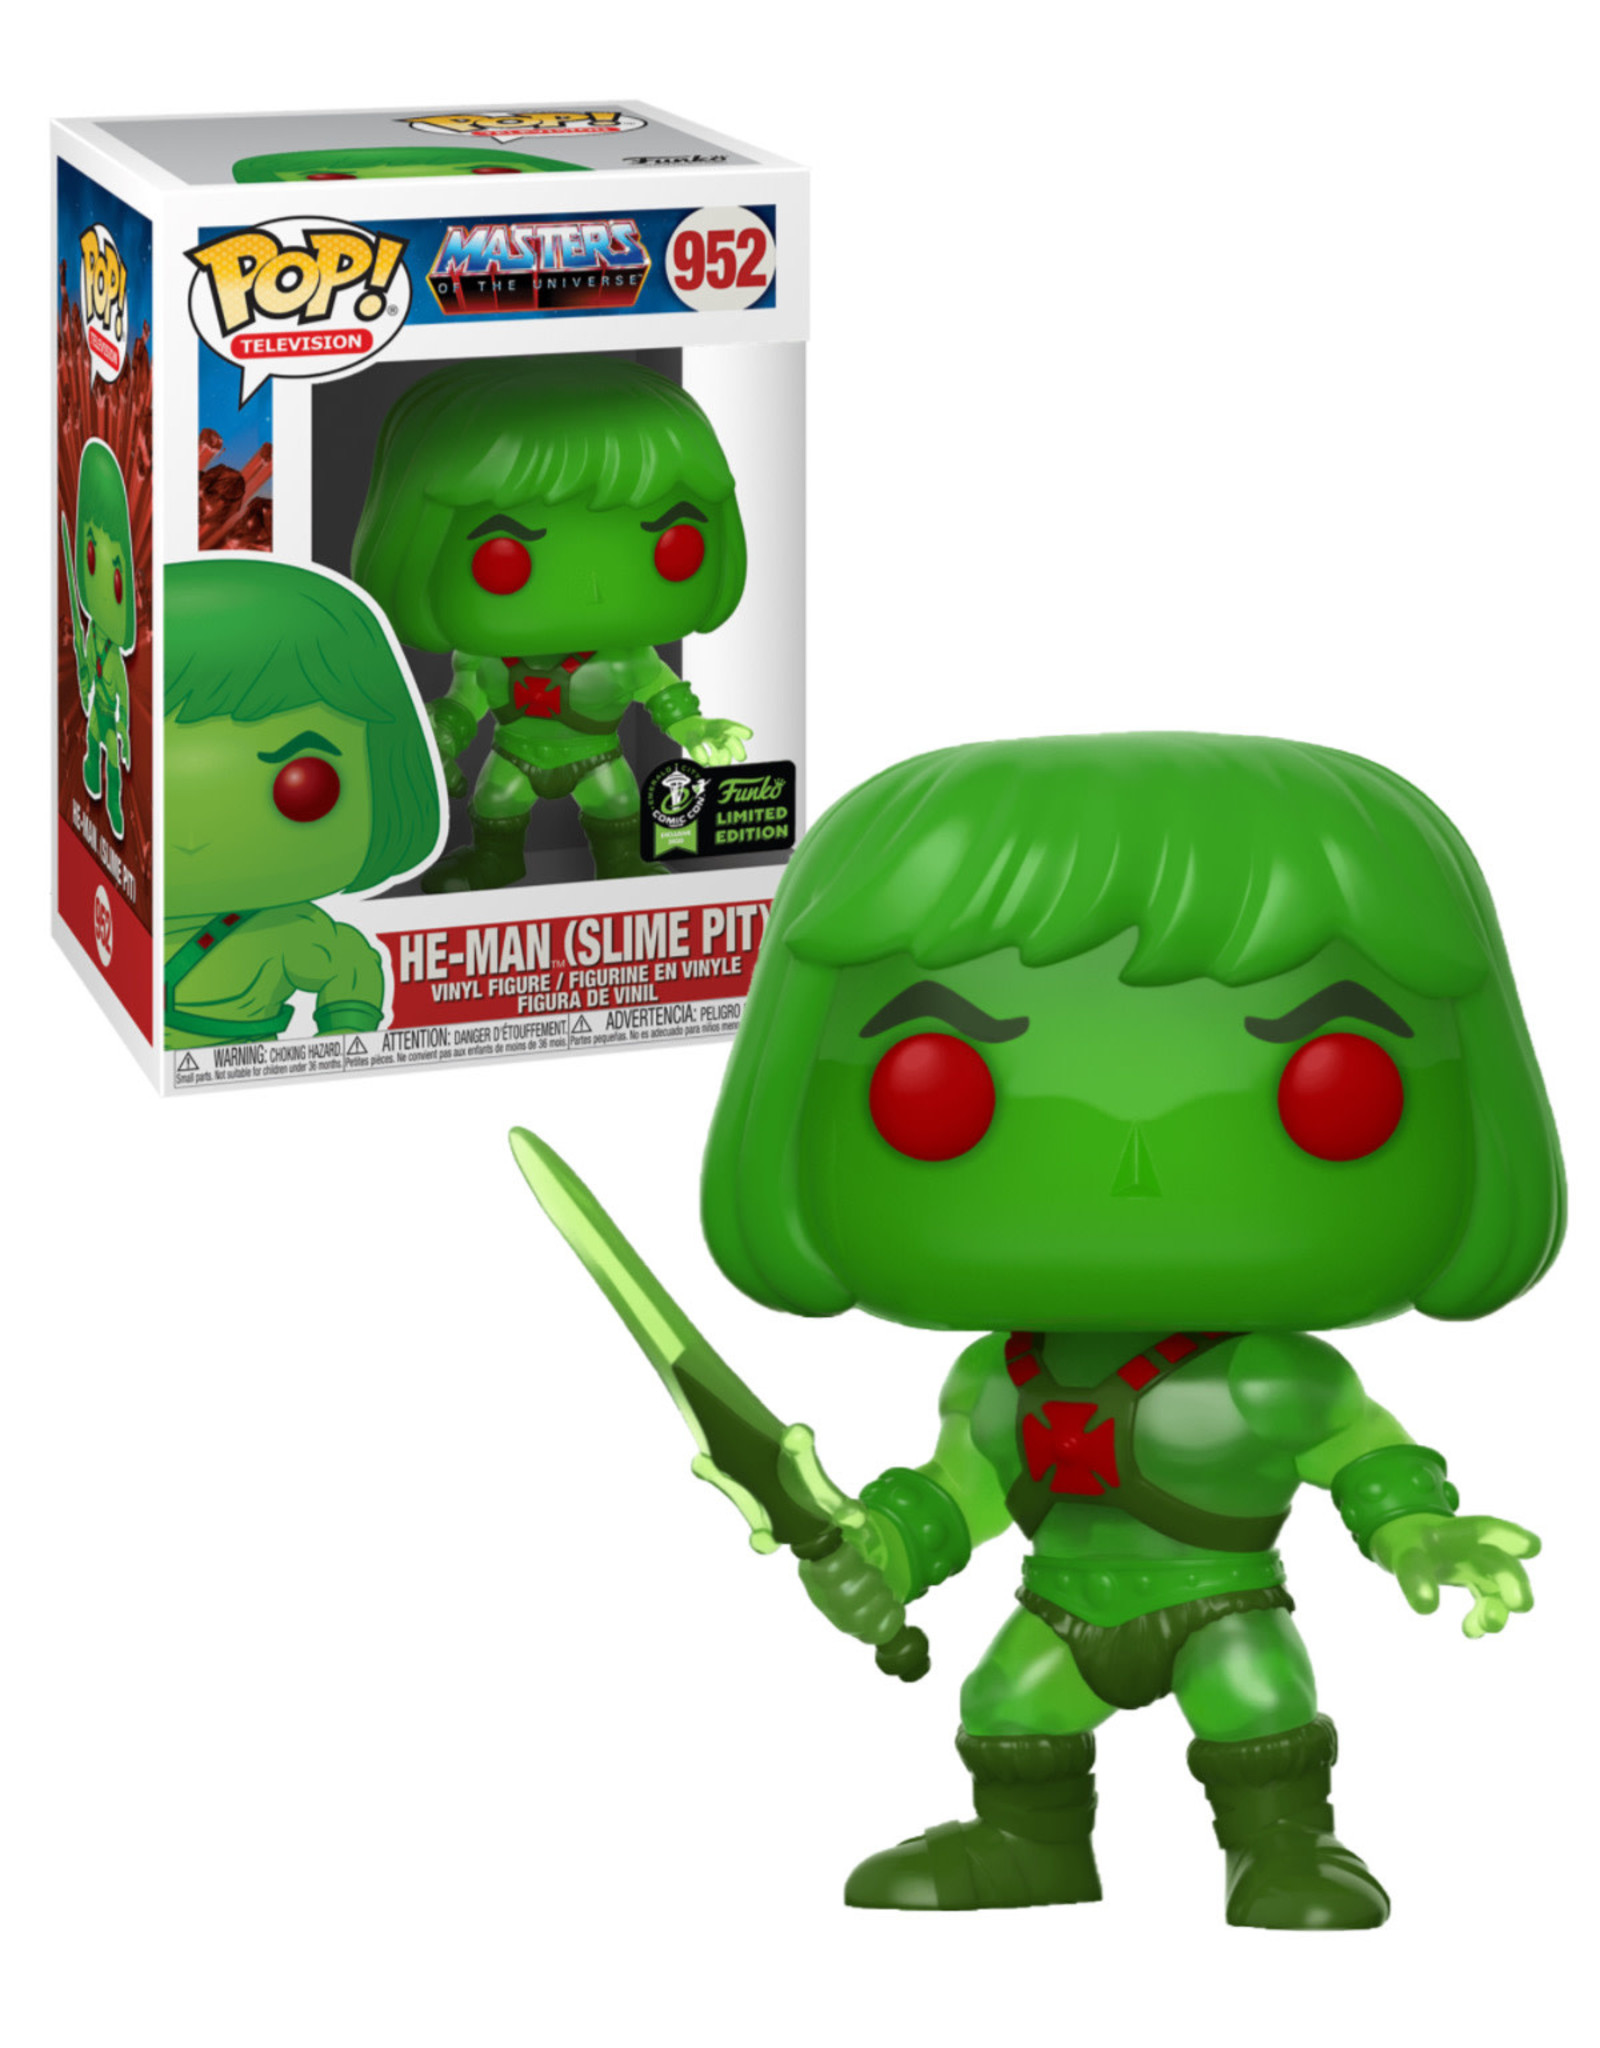 Master of the Universe 952 ( Funko Pop ) He-Man ( Slime Pit )